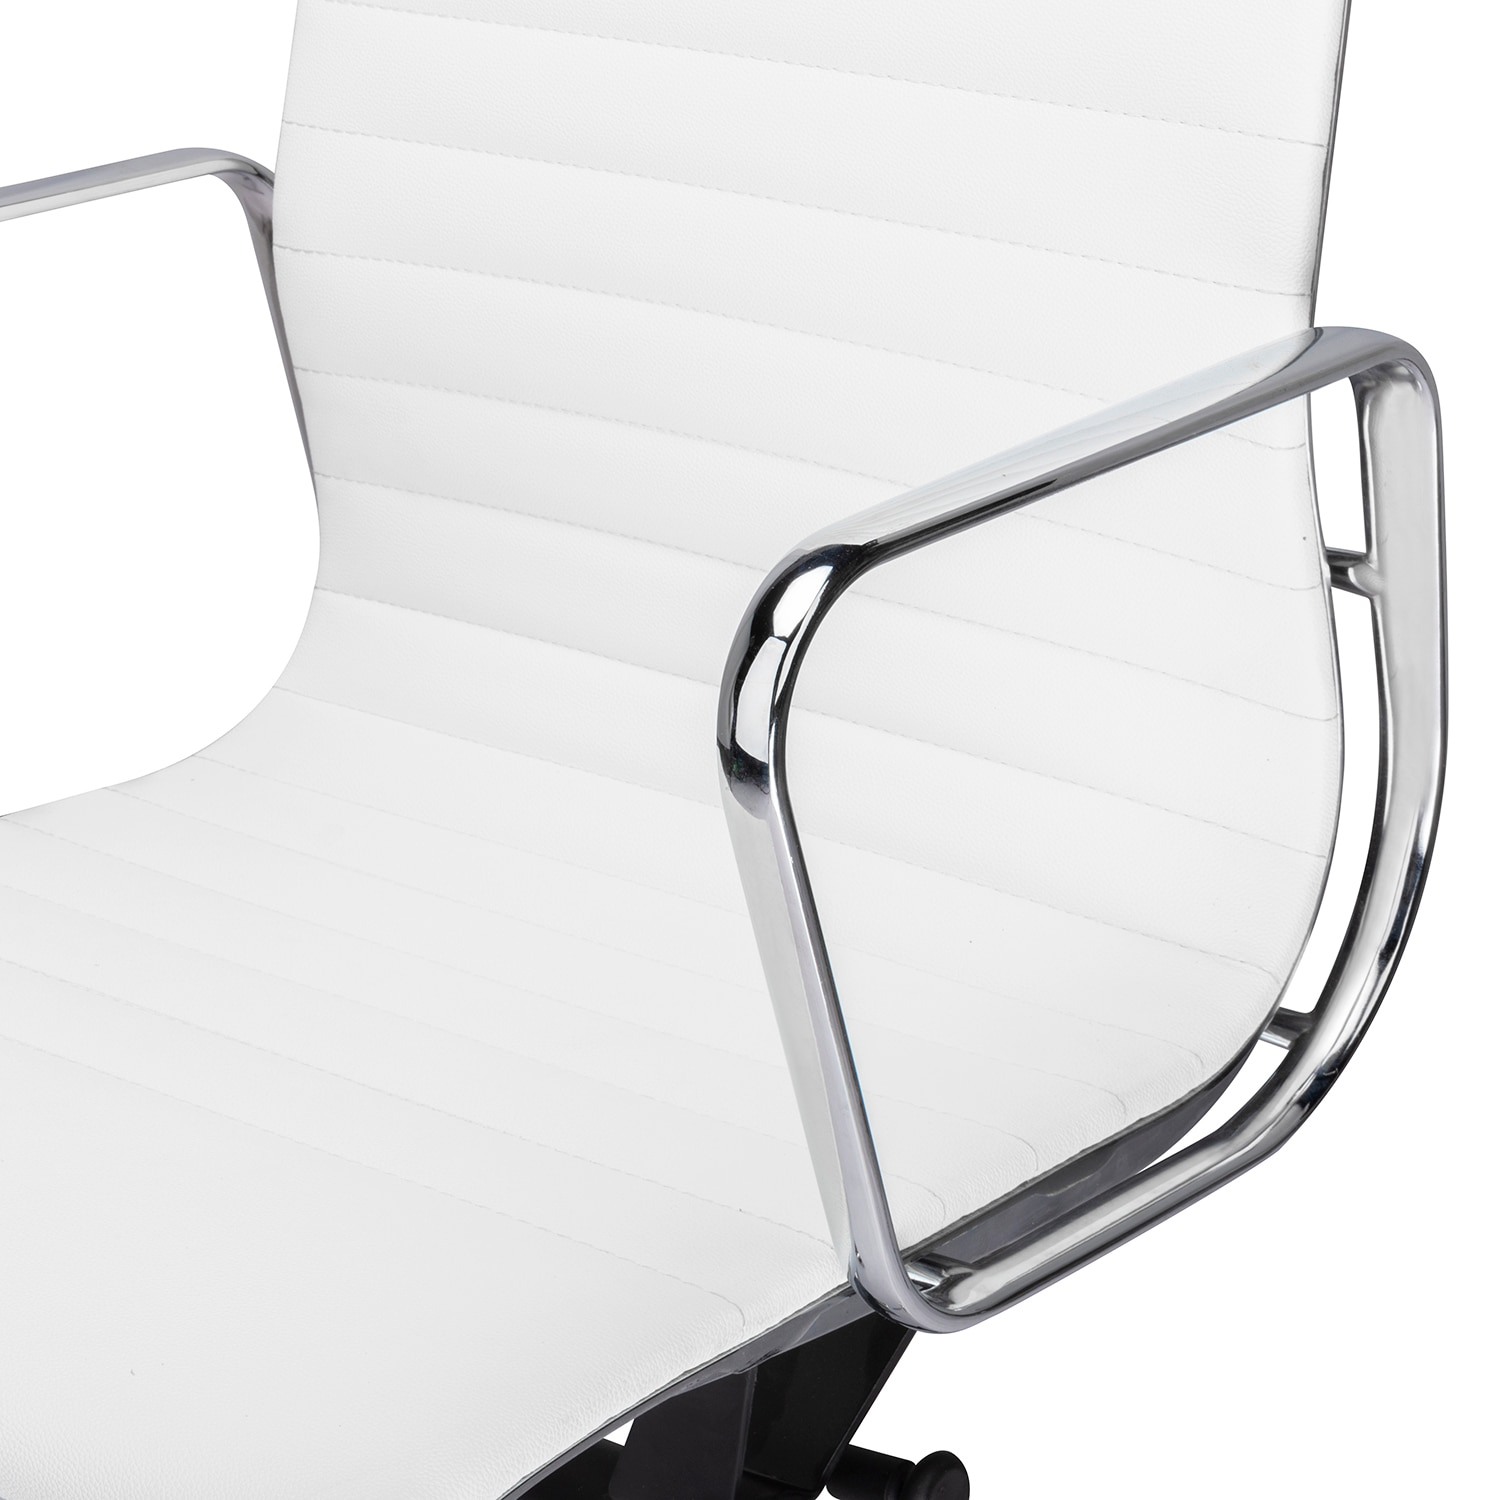 H37874f6969f14fd9bea0ff6c21573952E - High Back Aluminium Group Office Chair Replica Swivel Chair with Armrests Chromed Base Gaming Chair for Office Meeting Room